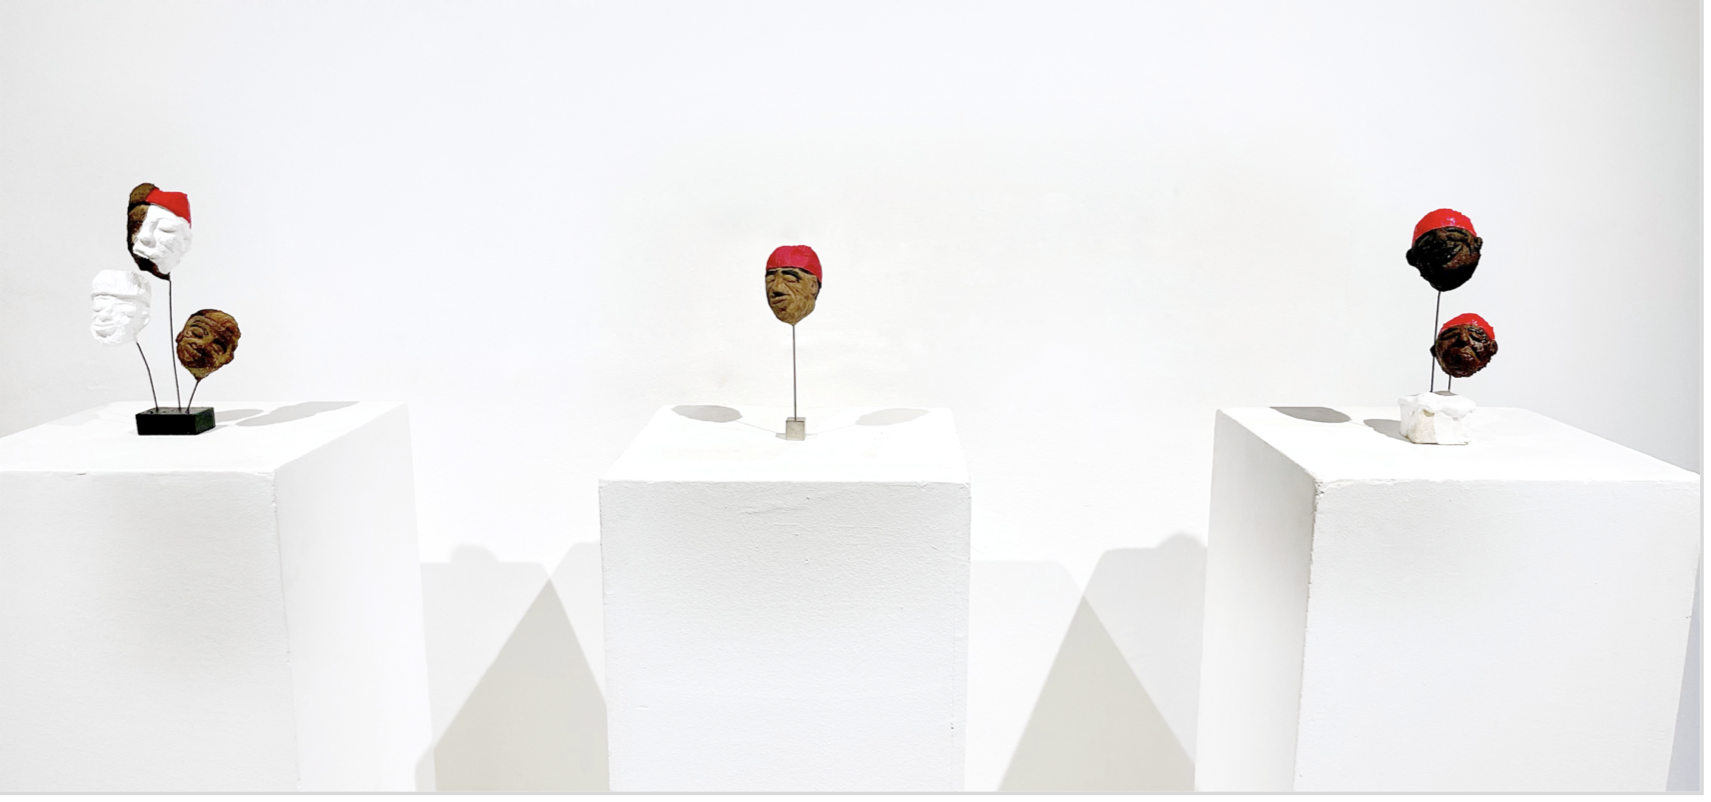 Installation View: Lune Diagne, 'Soul Brothers' 2021. Courtesy of Le Manège and OH GALLERY / Artworks © The artists / Photography © Khalifa Hussein